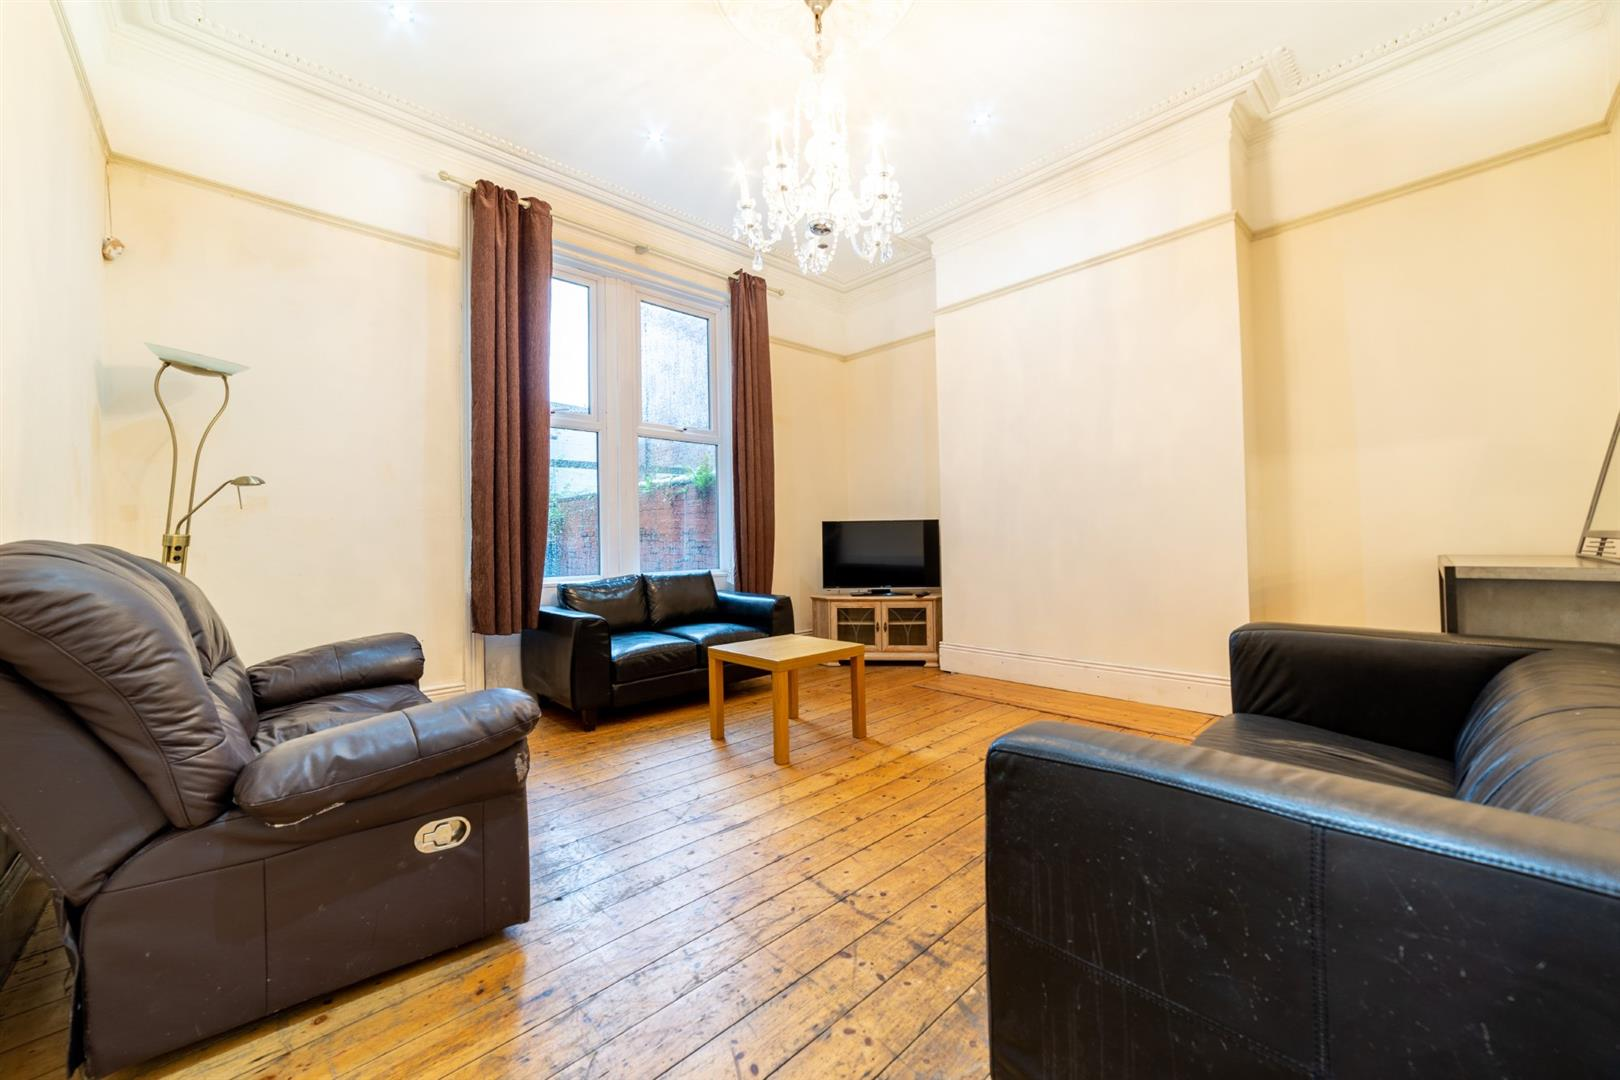 7 bed terraced house to rent in Newcastle Upon Tyne, NE2 3LN - Property Image 1